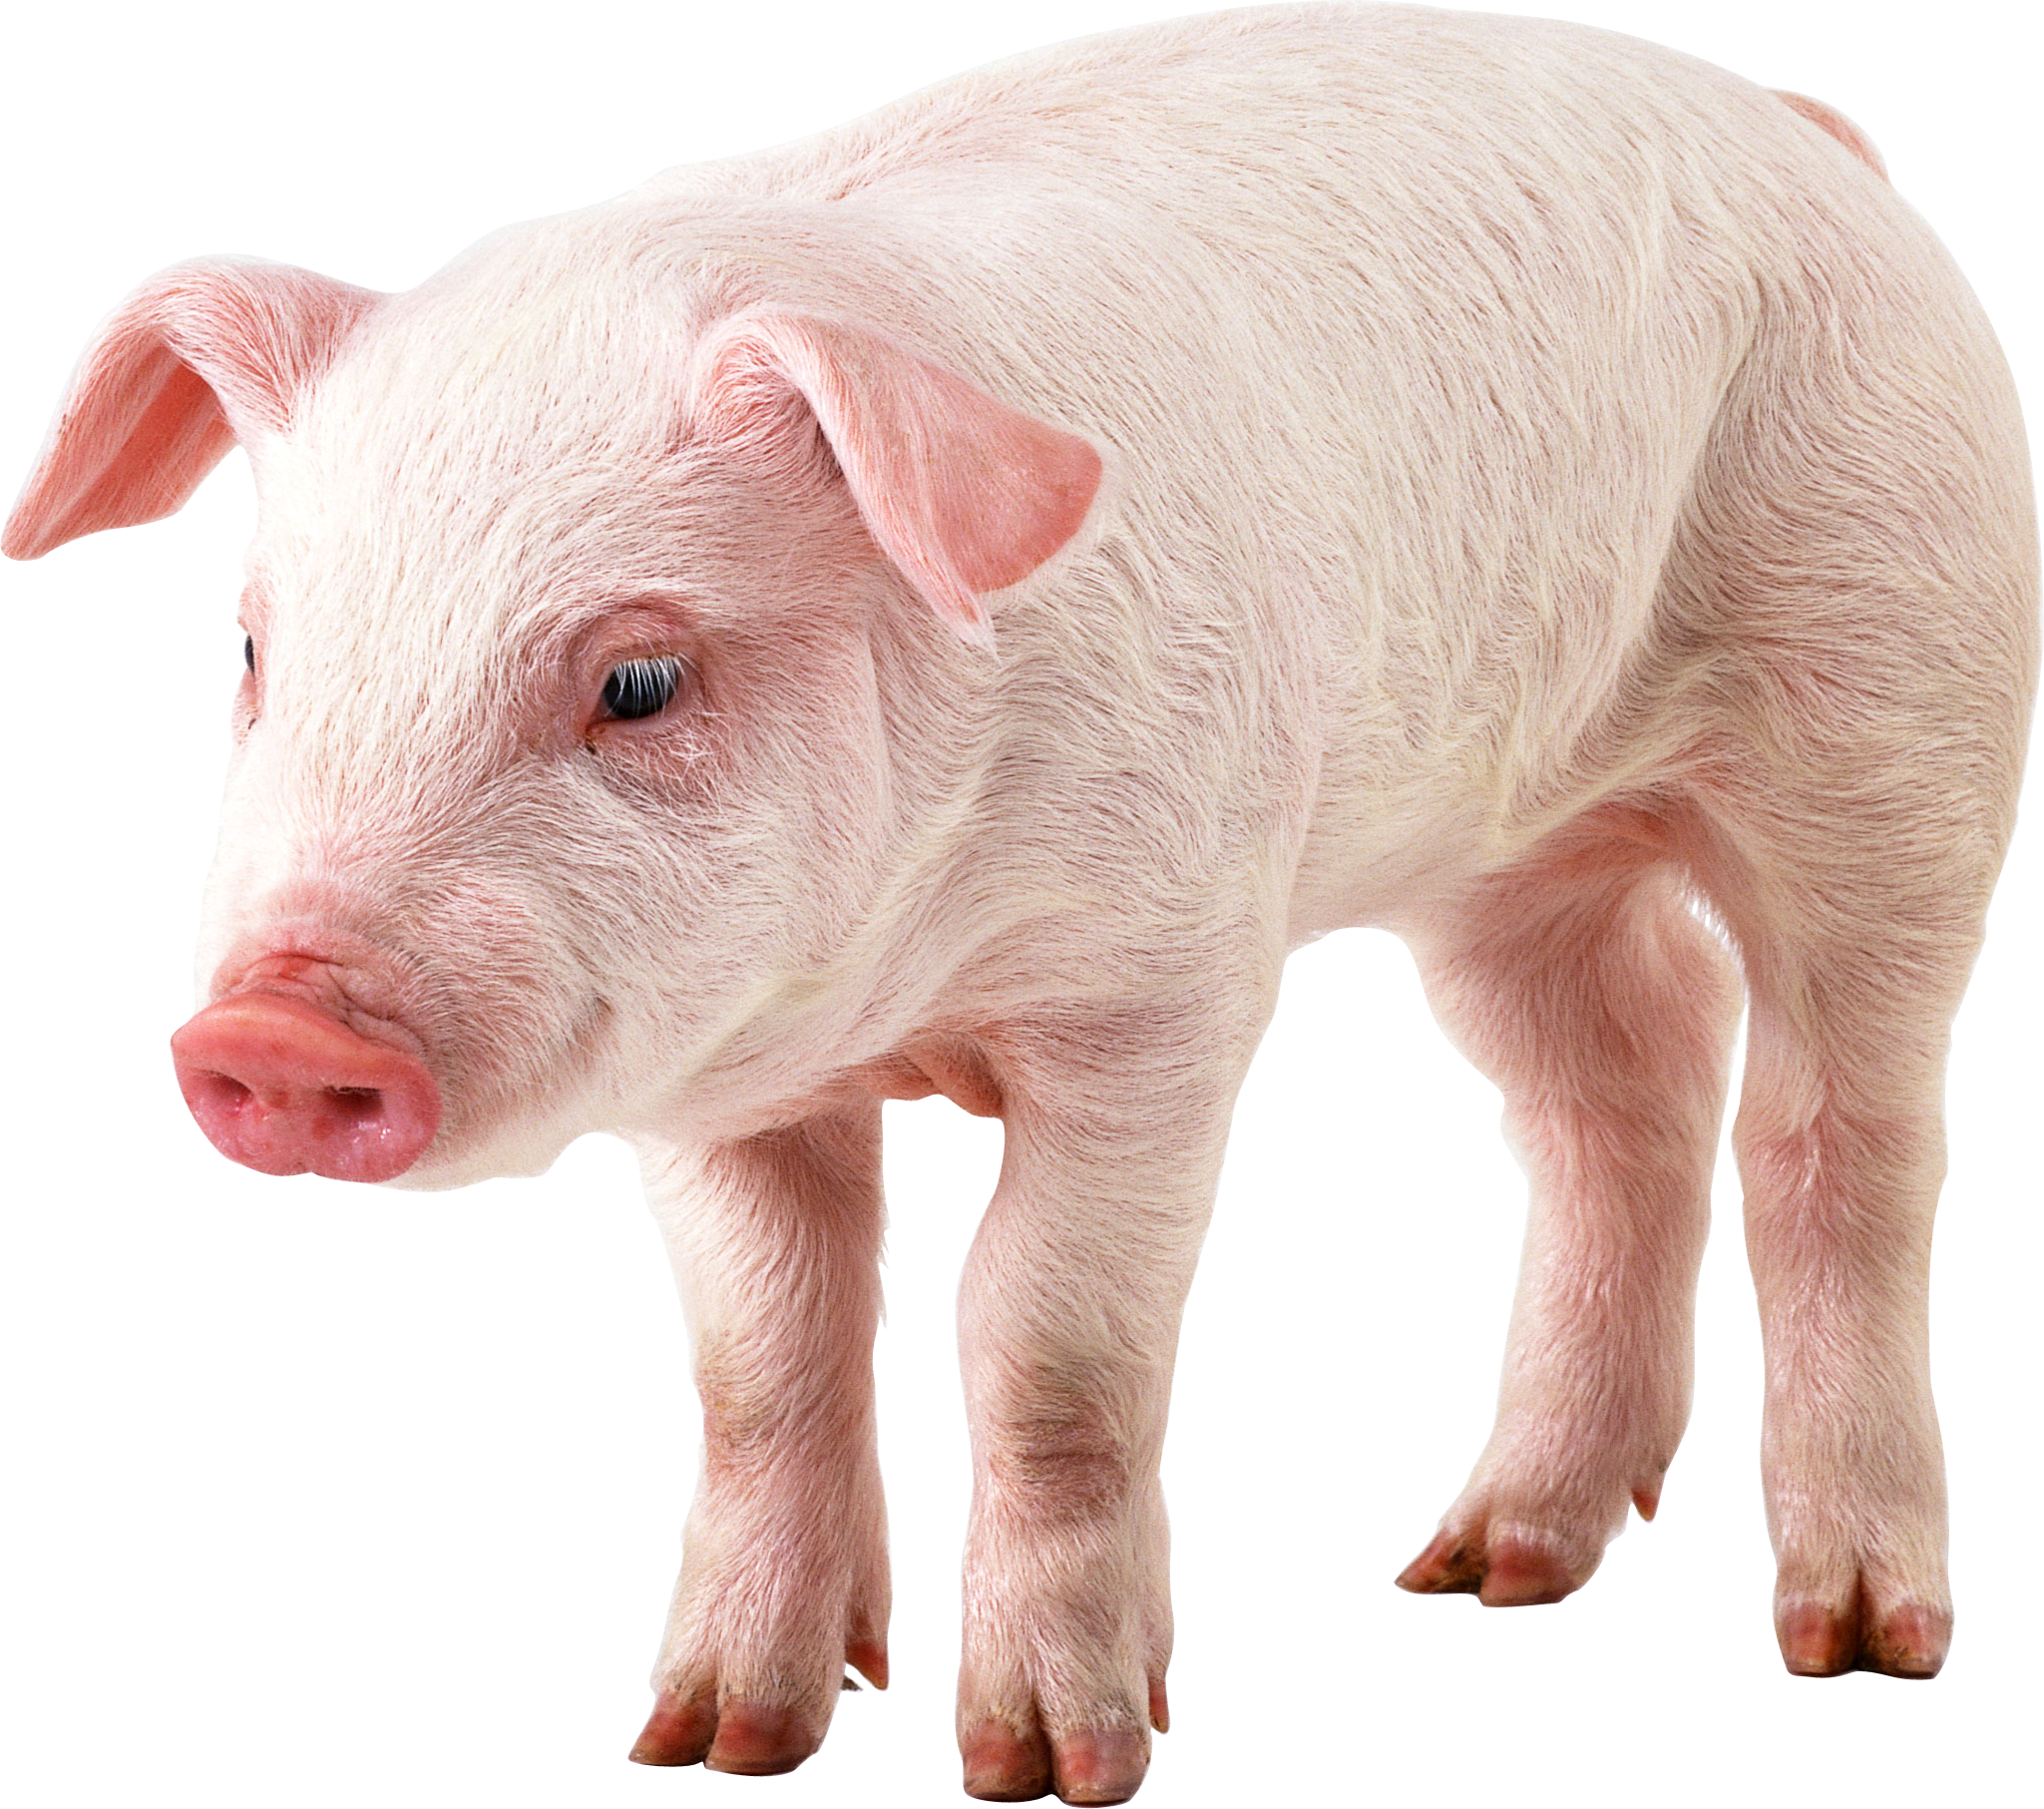 Hog vector angry pig. Hq png transparent images